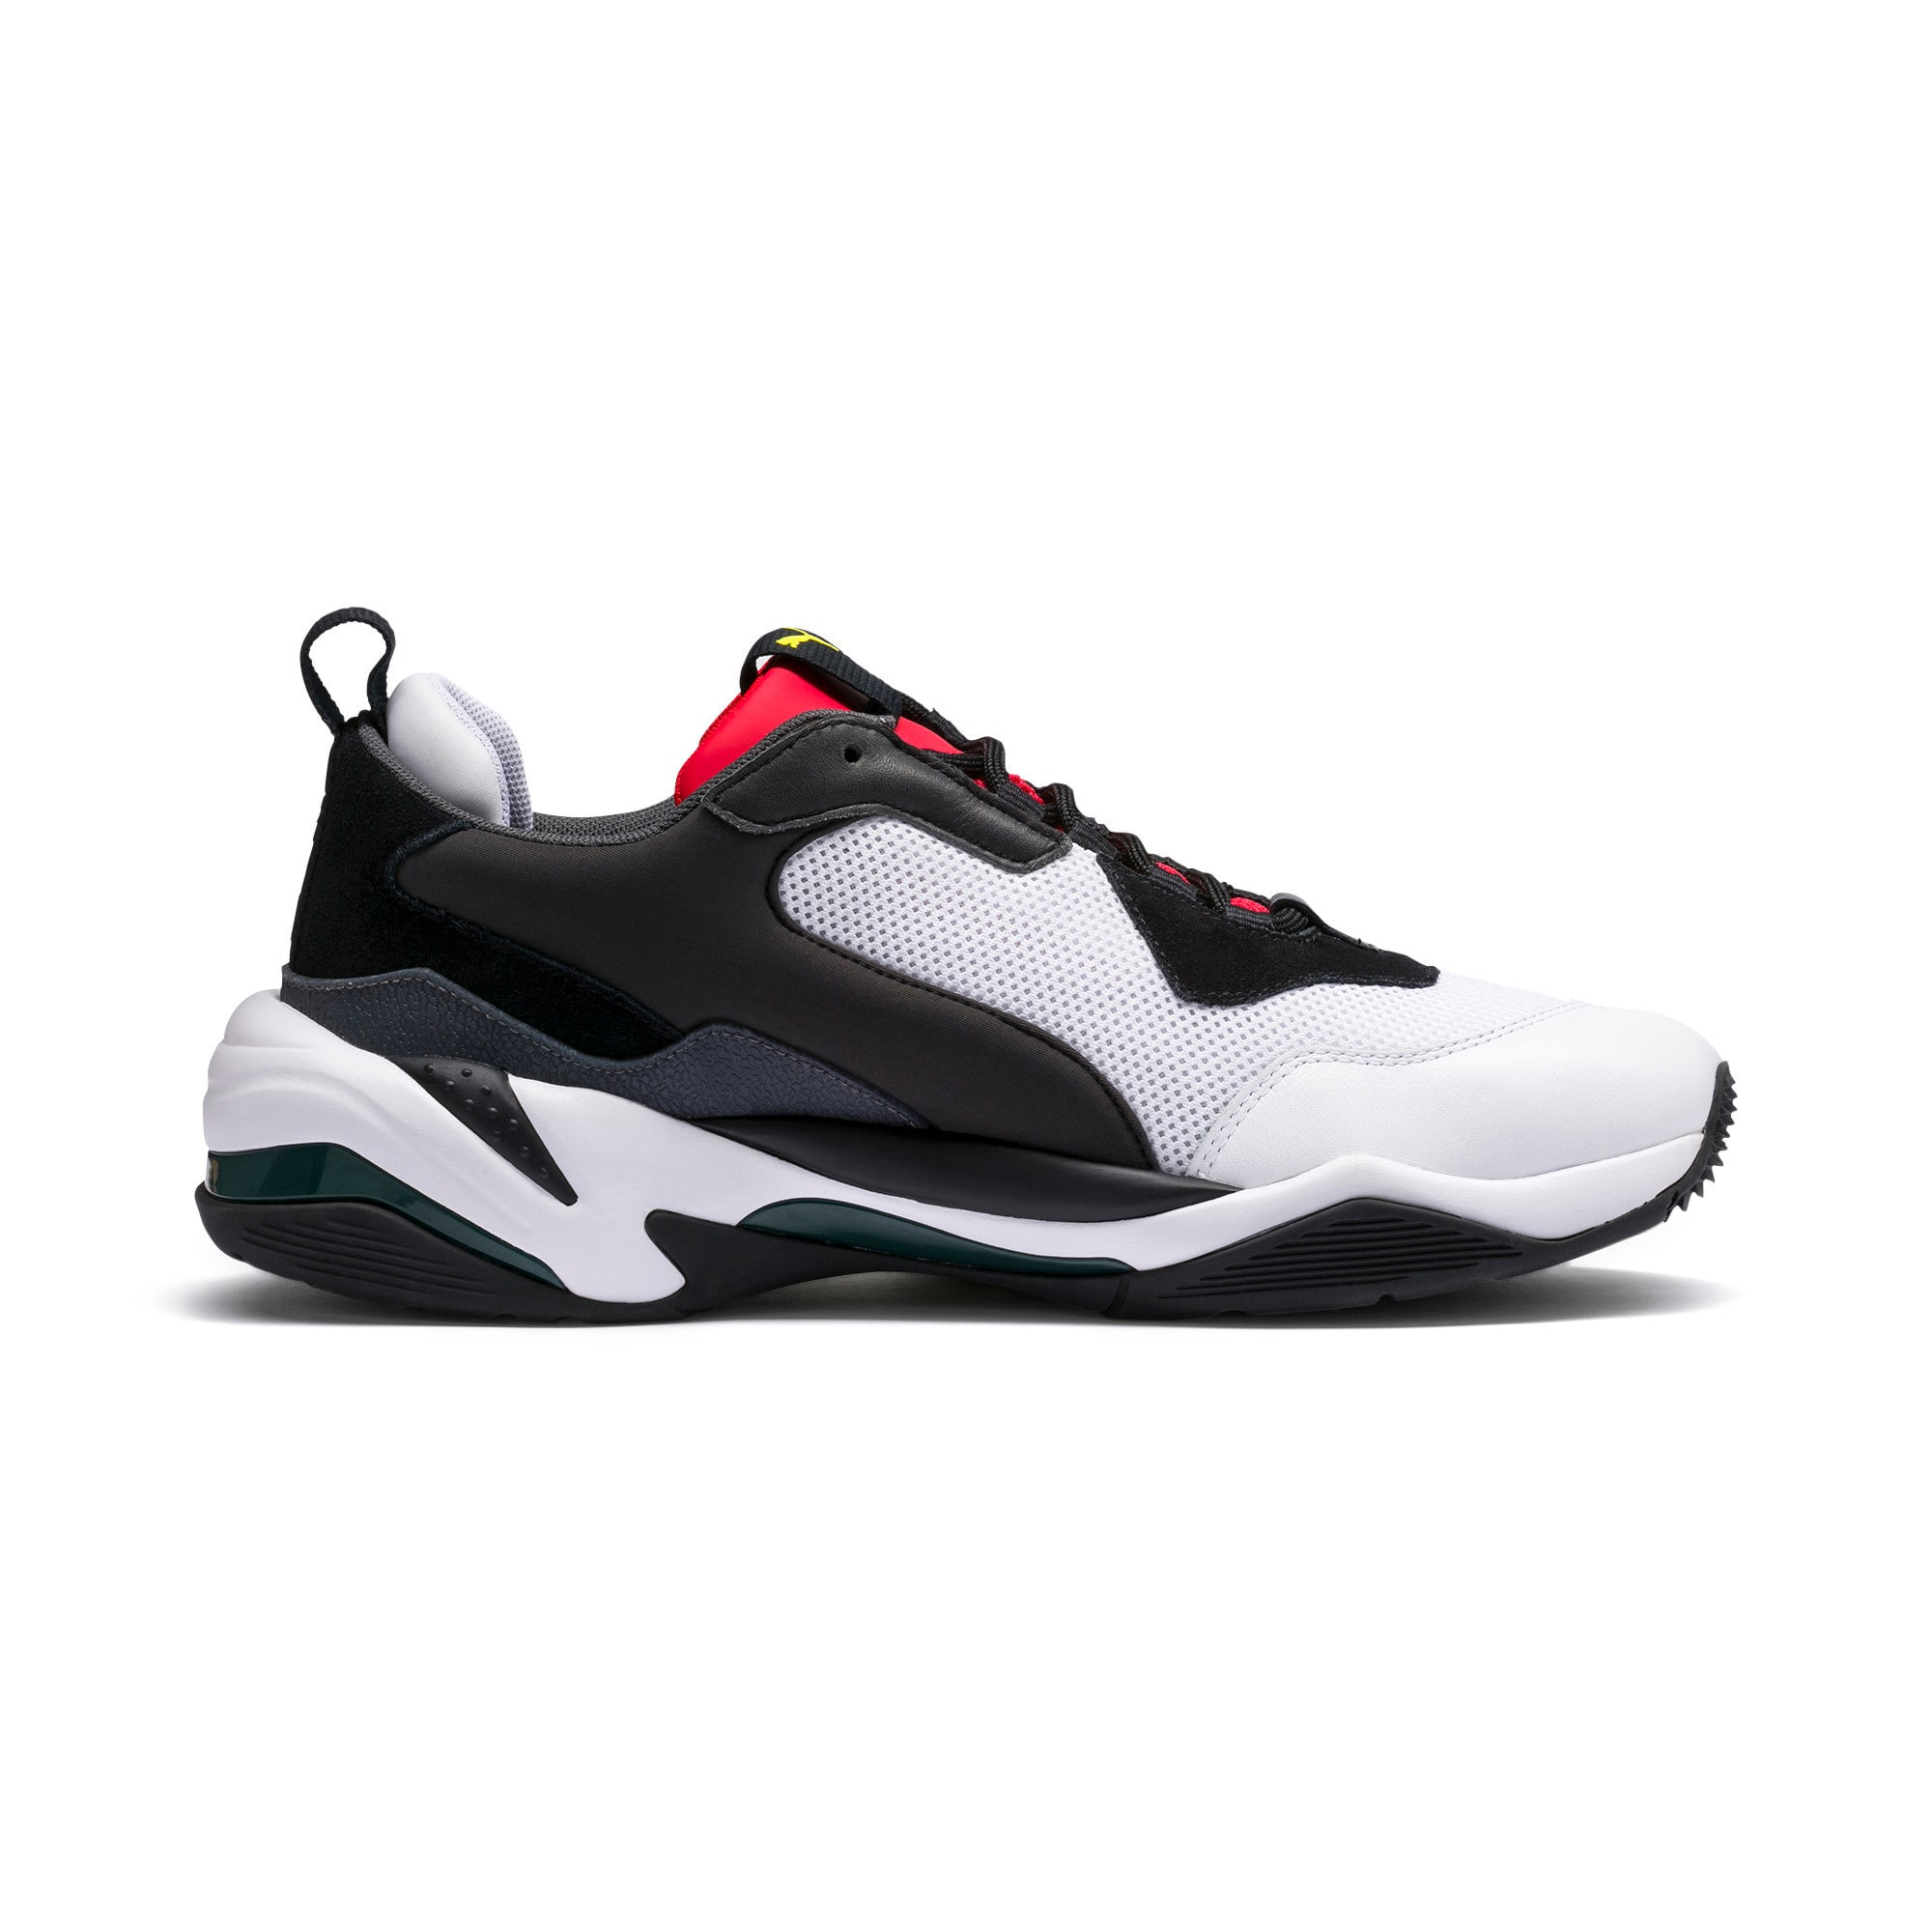 Thumbnail 5 of Thunder Spectra Sneakers, Puma Black-High Risk Red, medium